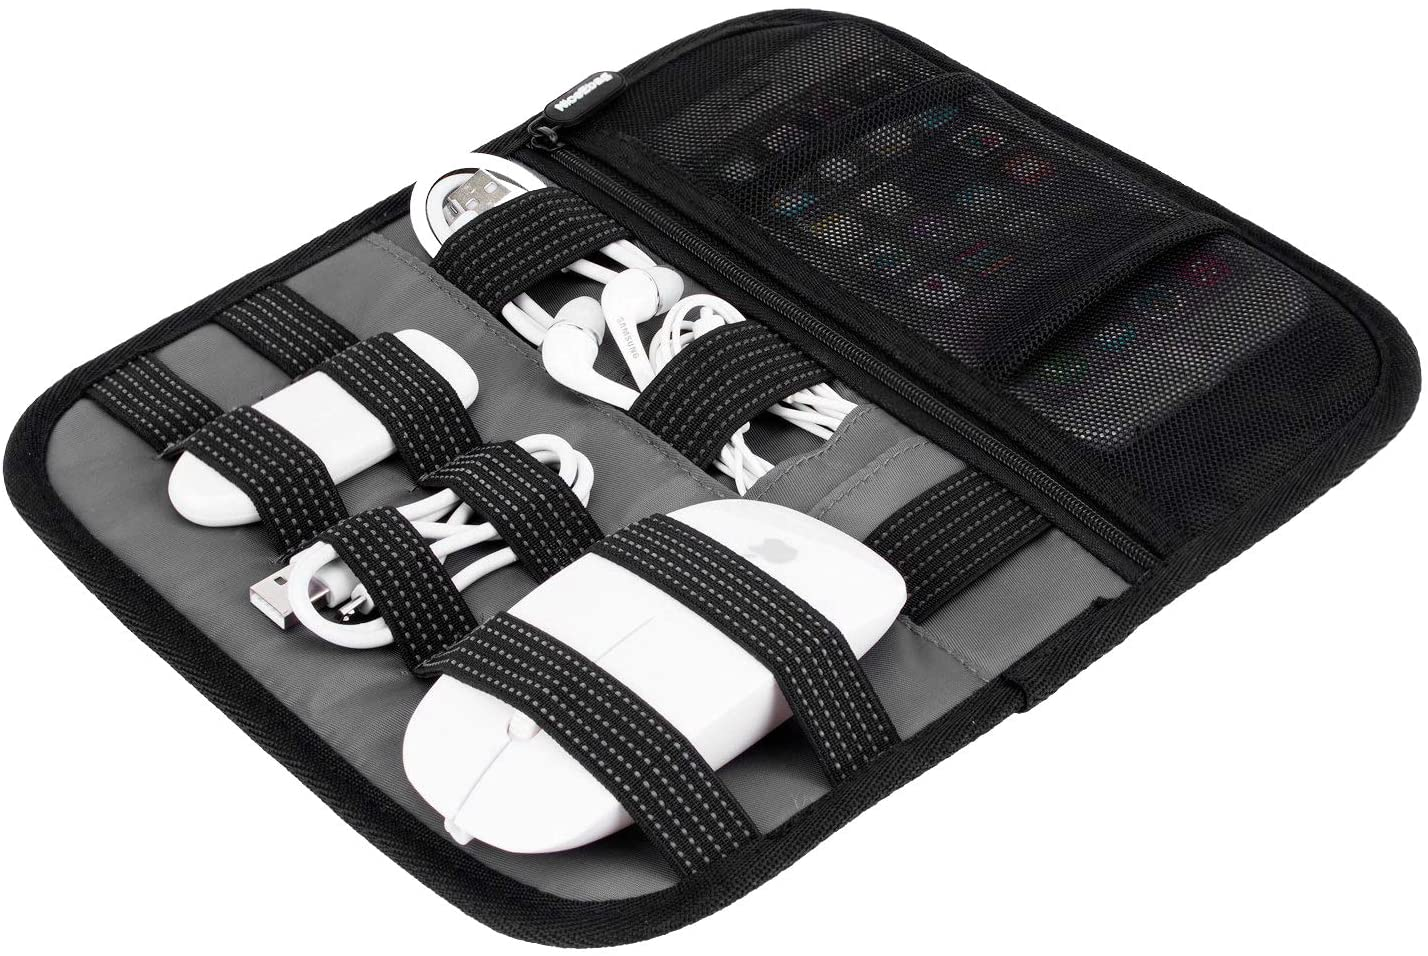 SOCKO Accessories Organizer Electronics Holder Board for Fixing Cables/HD Drive/Travel 10.5x9.0 Inches (Black)